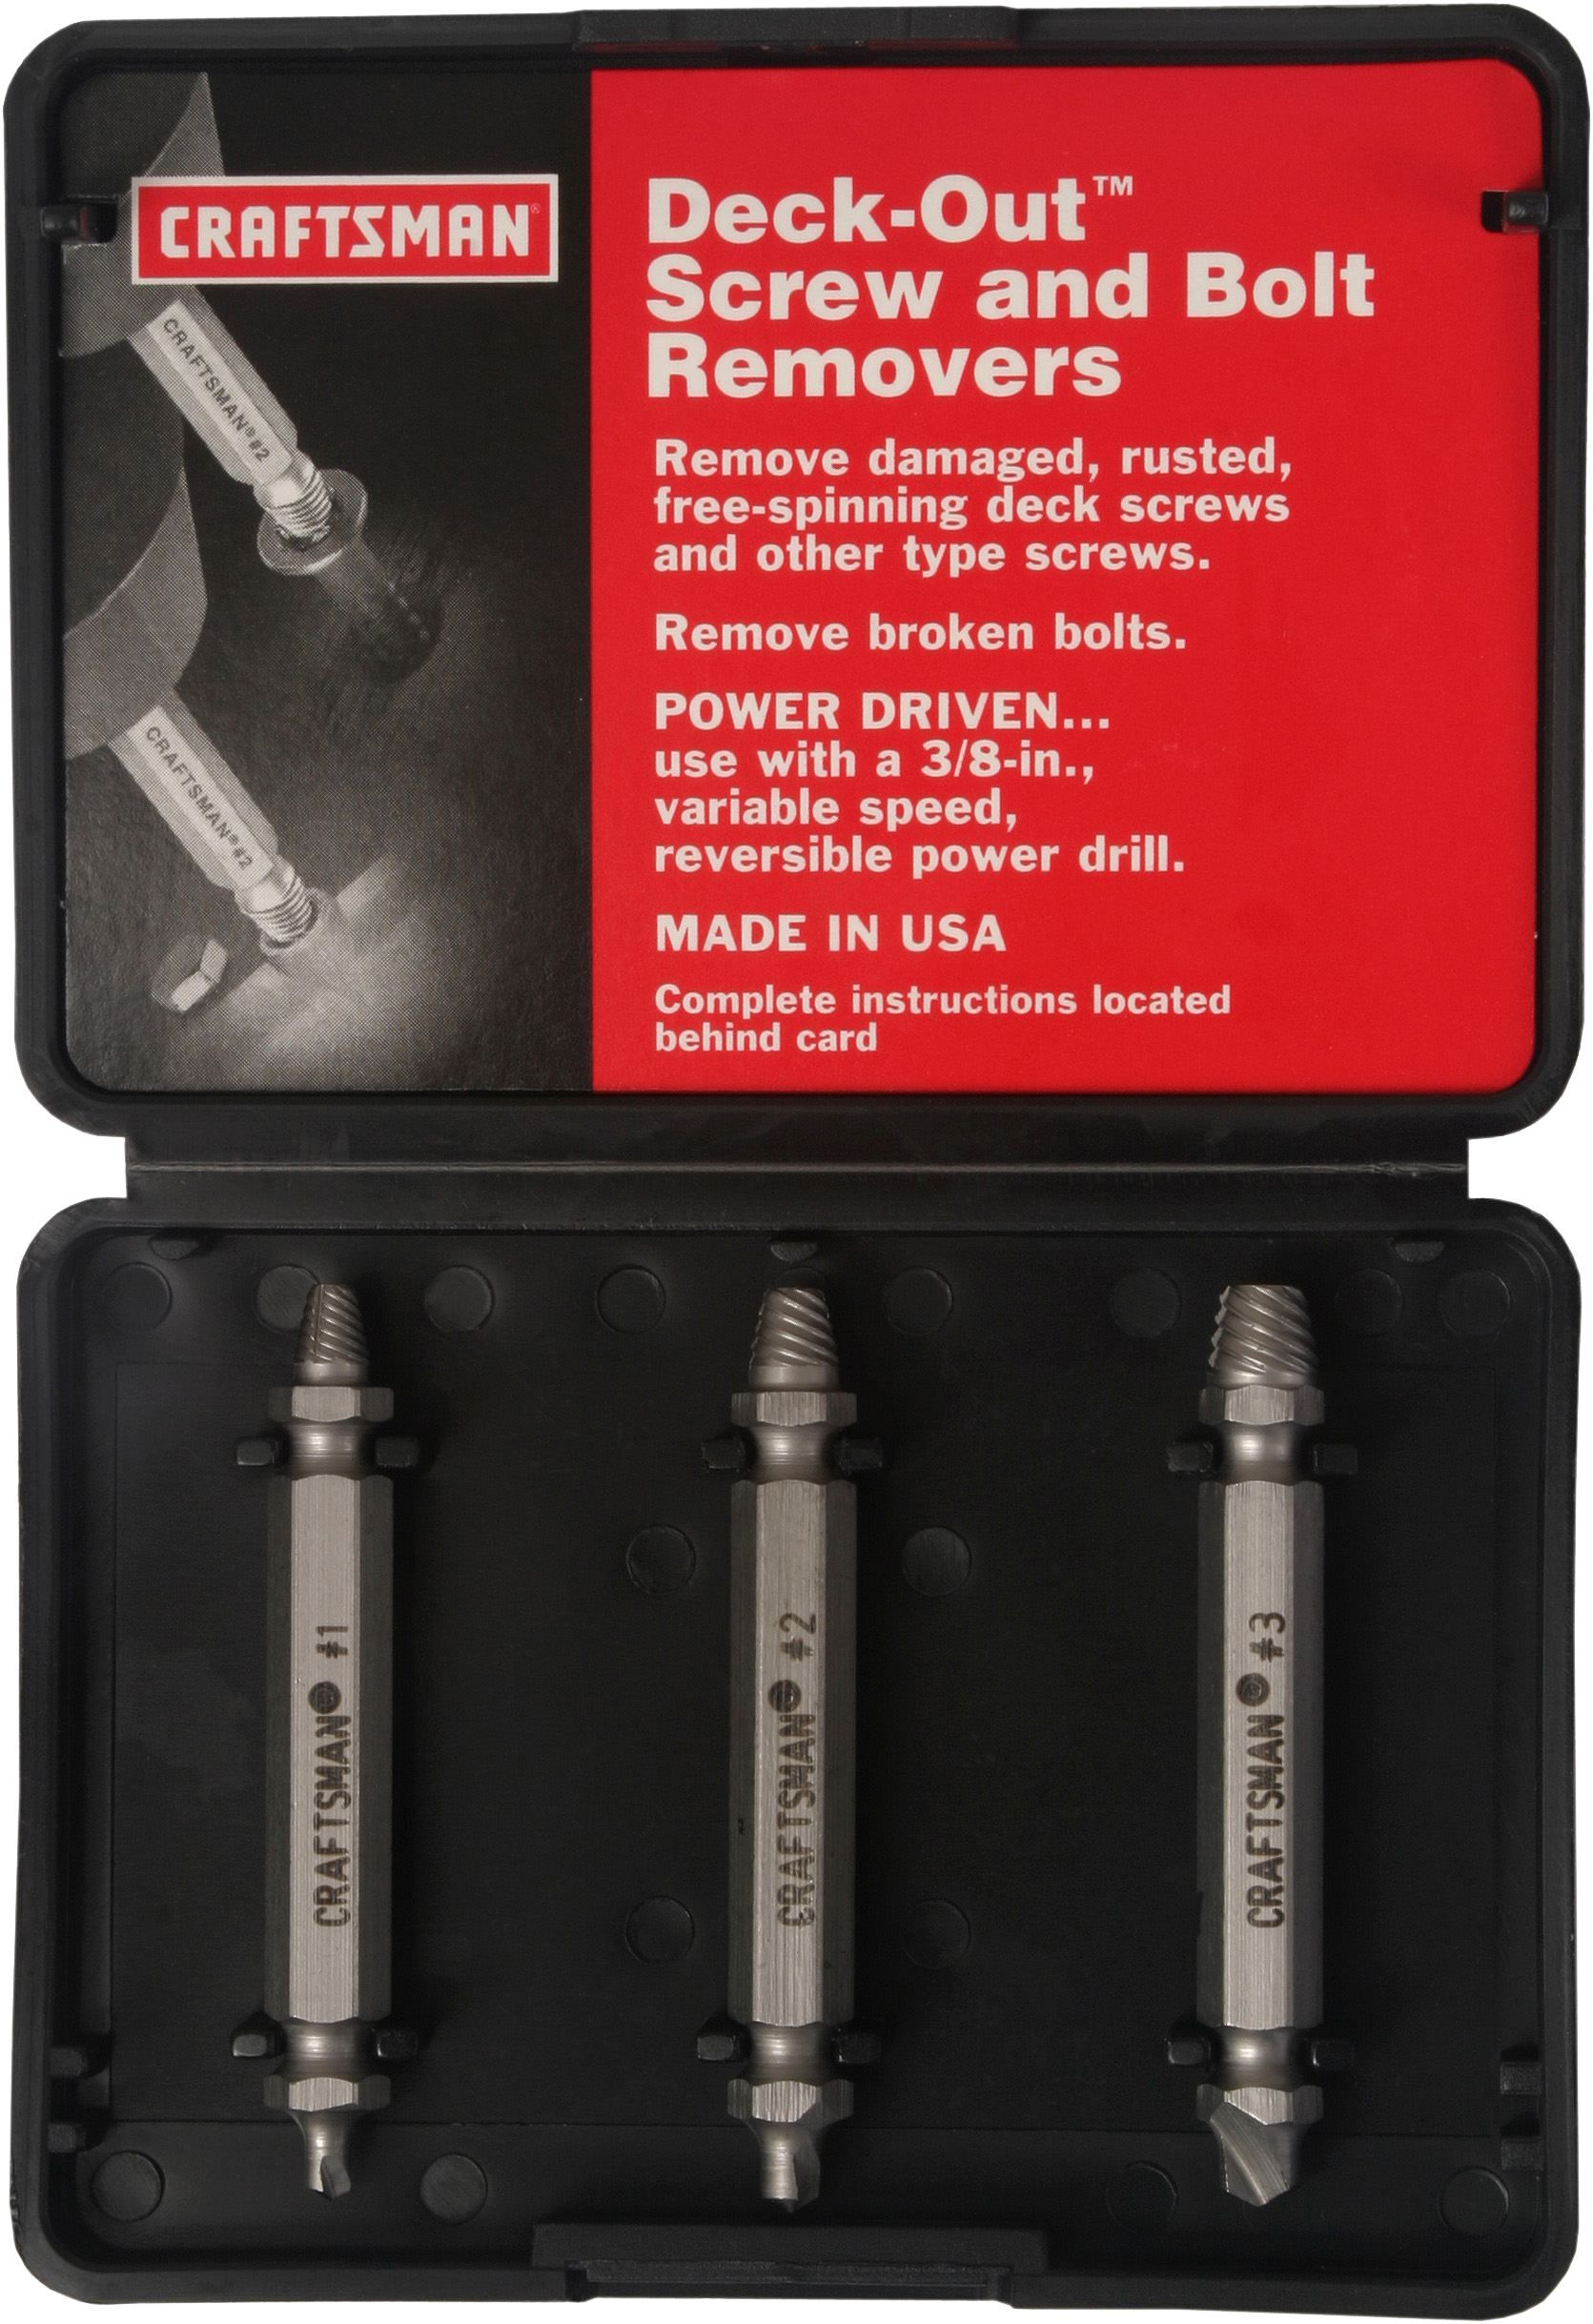 Craftsman 3 Pc Deck Out Screw And Bolt Removers Tools Hand